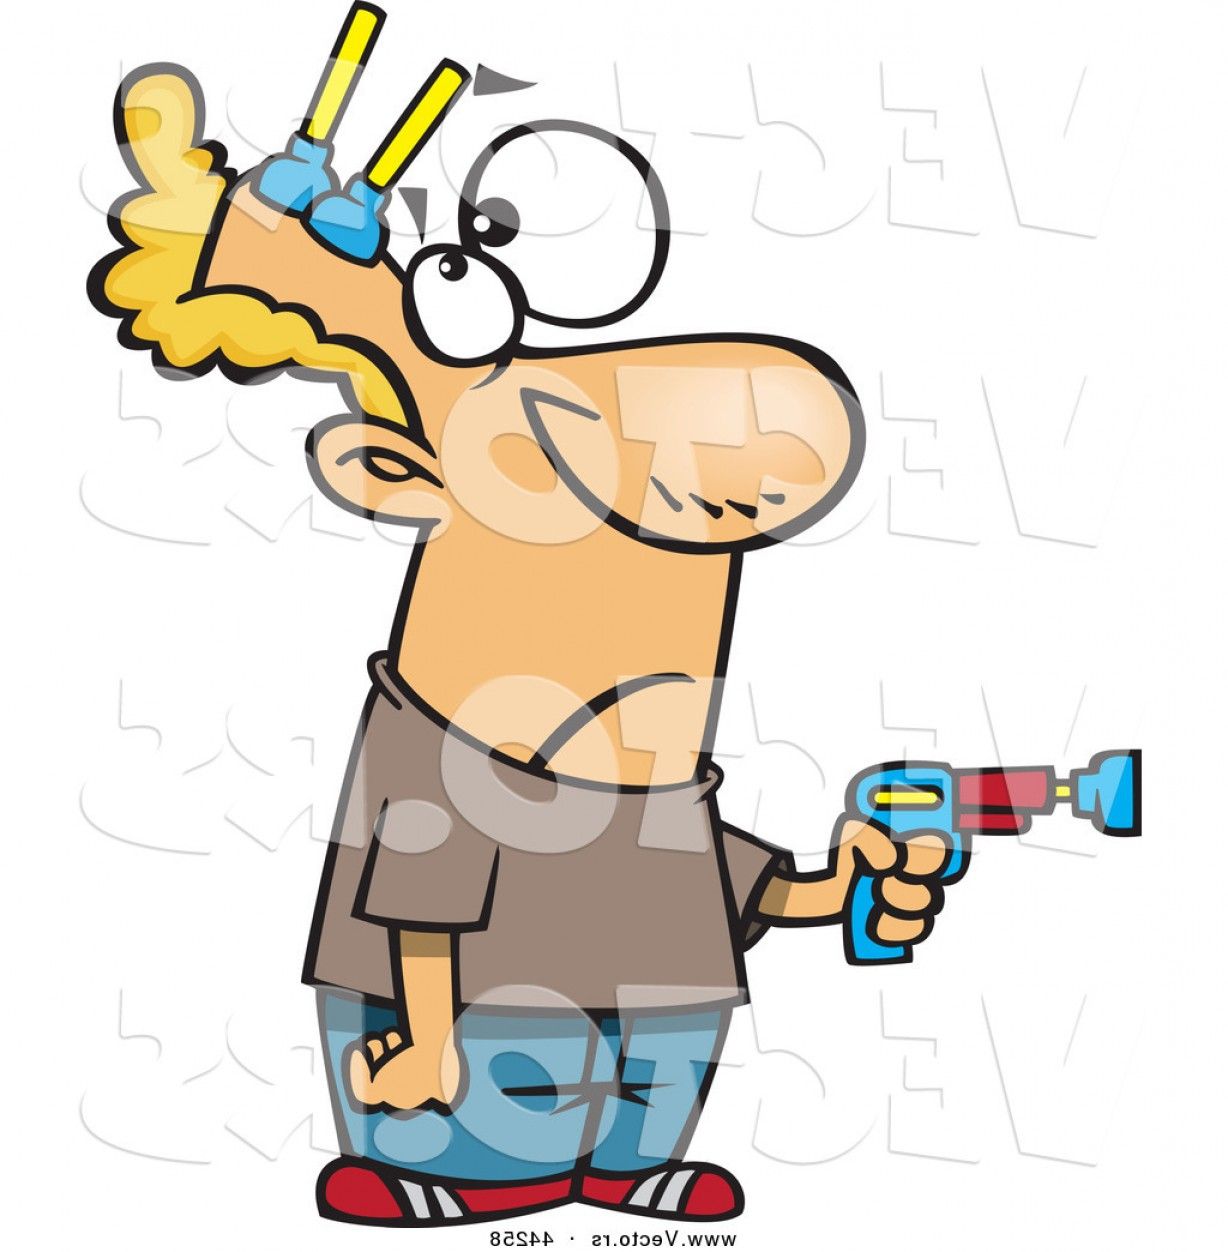 Nerf Gun Vector: Vector Of A Cartoon Man Pointing Toy Gun While Getting Shot With Nerf Darts To His Head By Toonaday